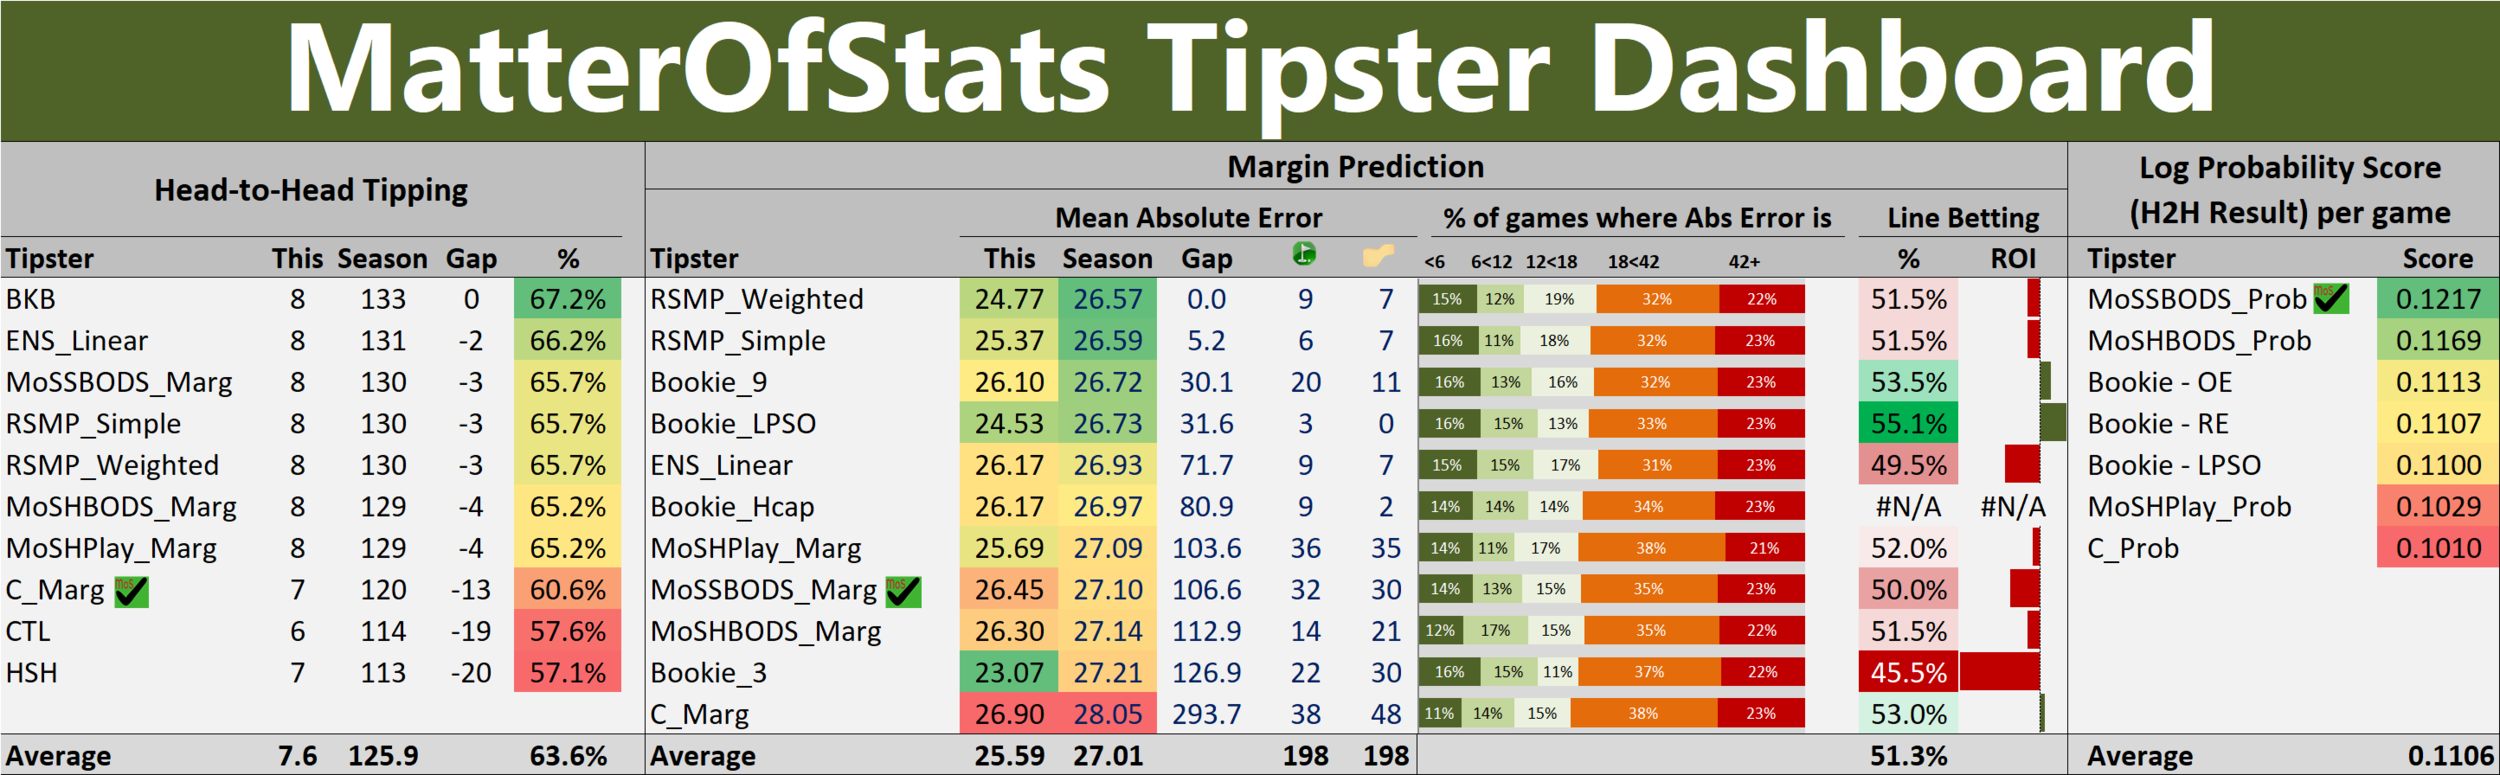 R23 - Tipster Dashboard.png